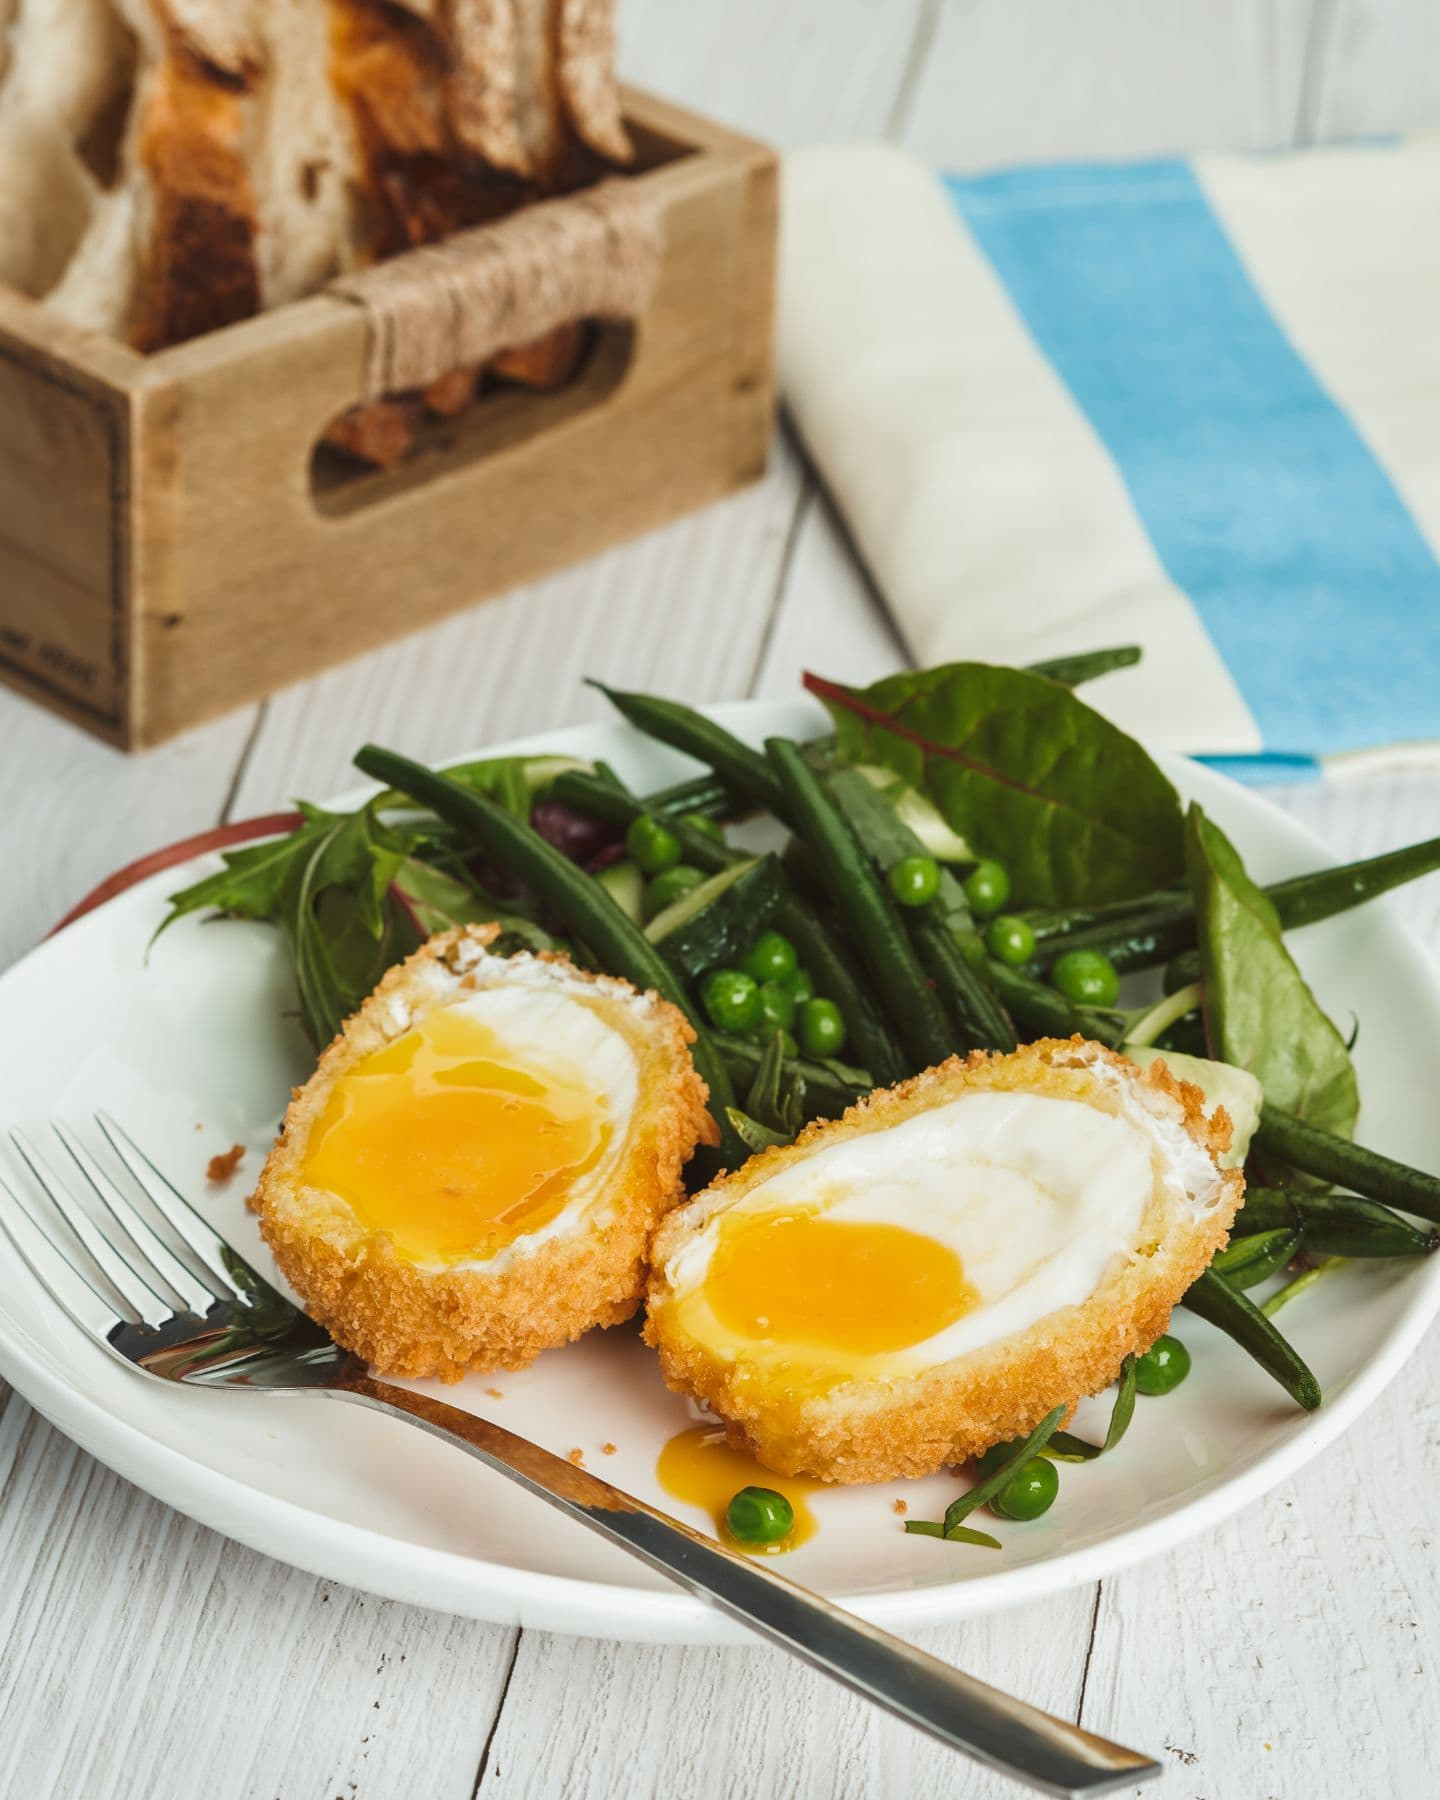 Crispy eggs with a summer salad on plate and bread in the background